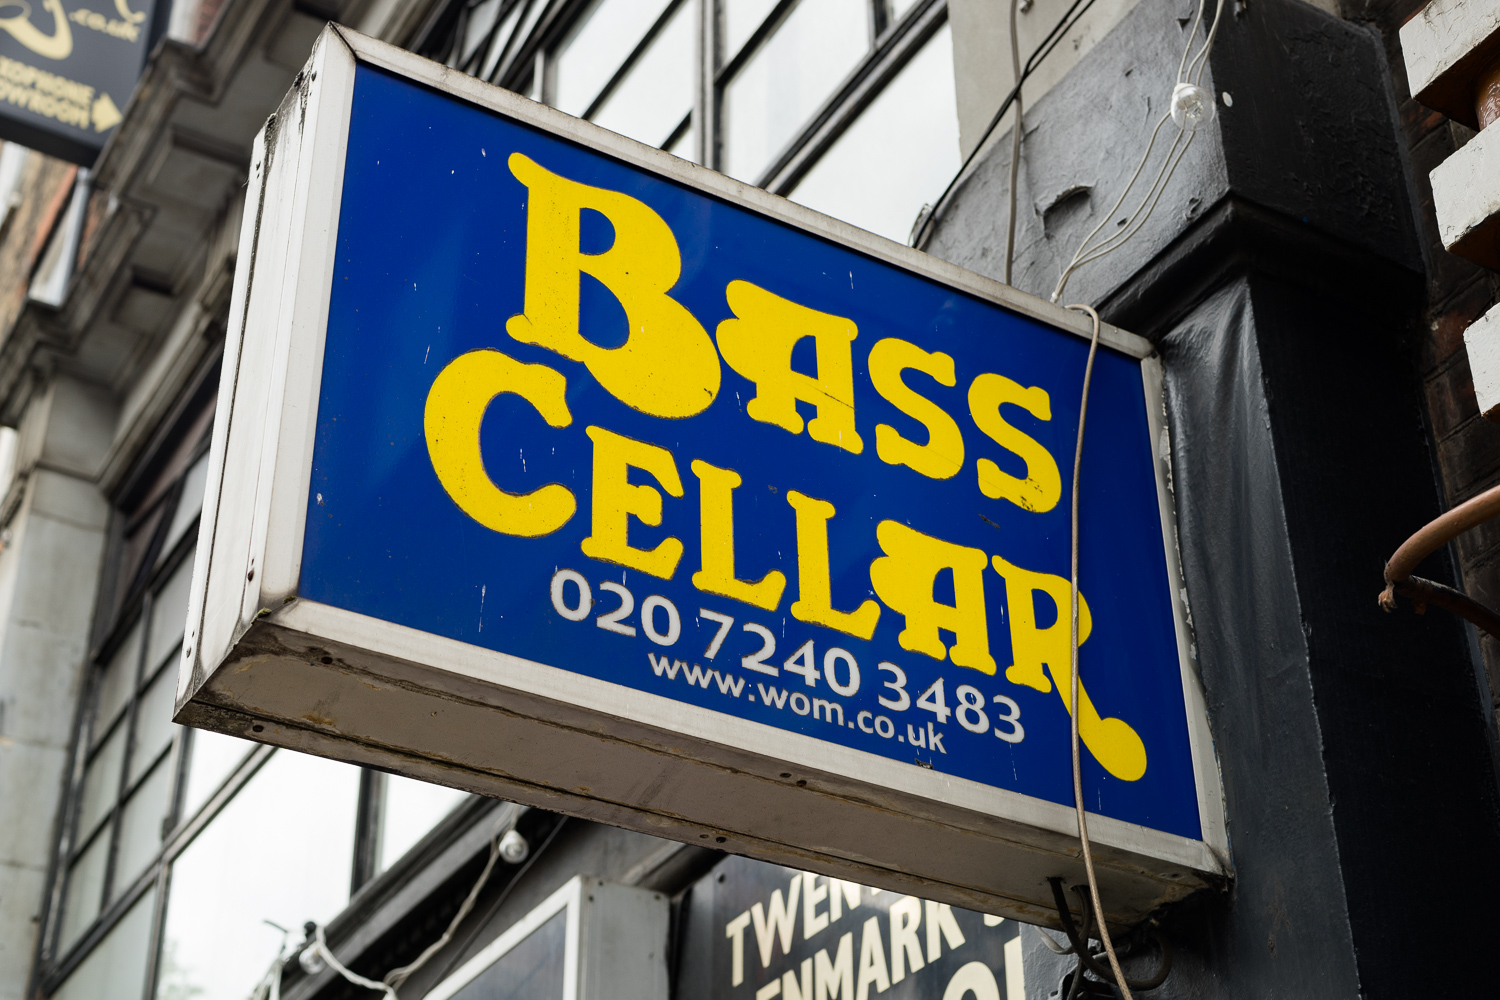 Photo of the Bass Cellar sign at 22